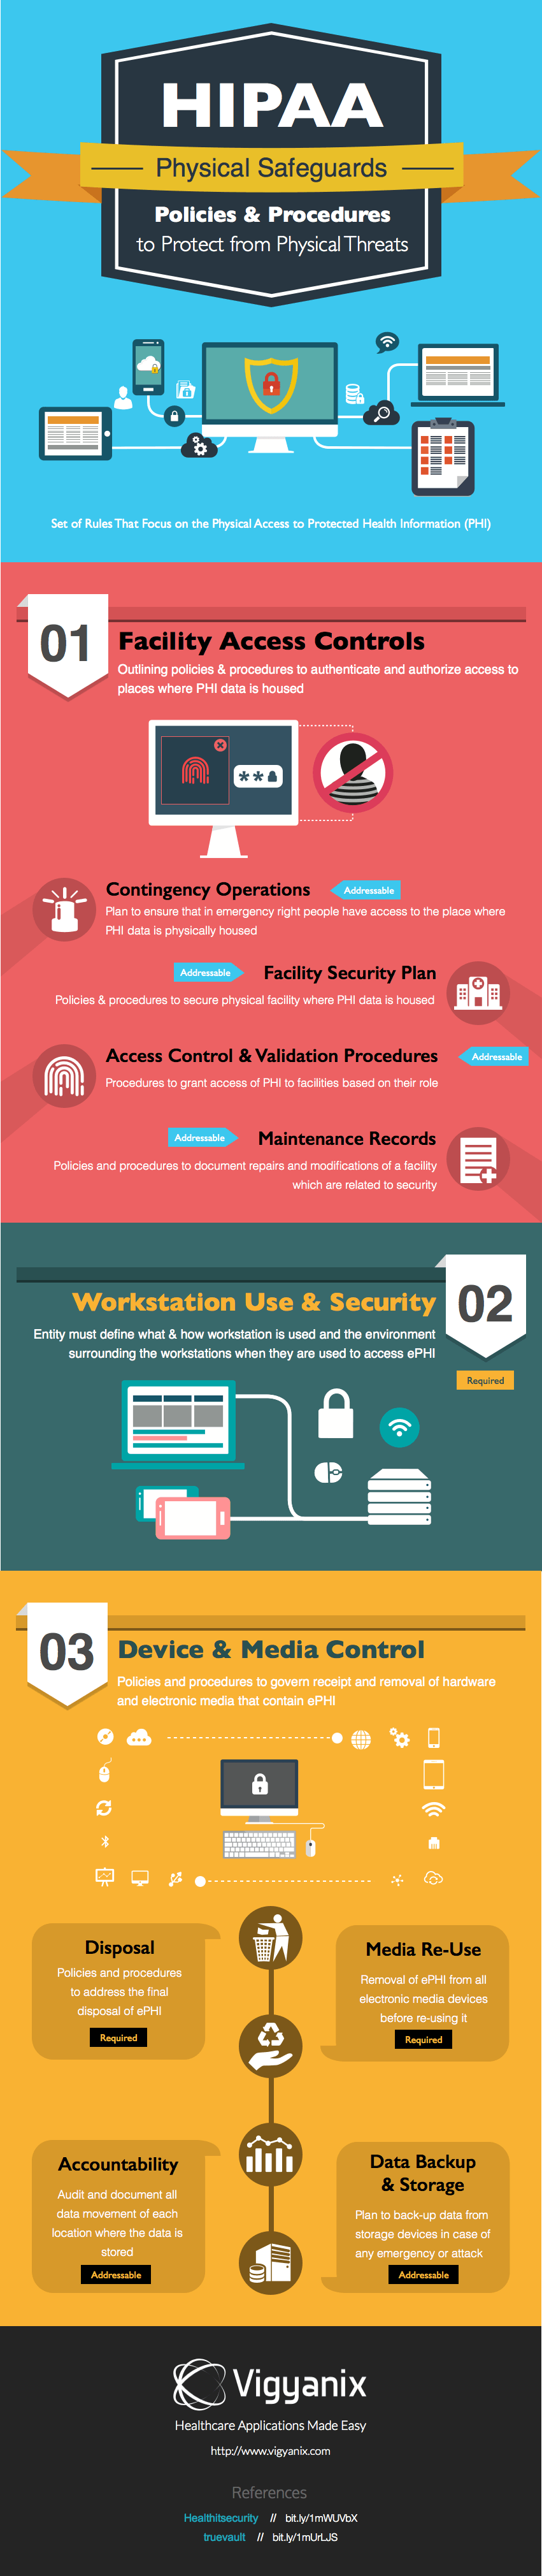 Hipaa physical safeguards policies and procedures to protect from a guide to the physical safeguards of hipaas security rule infographic pronofoot35fo Image collections